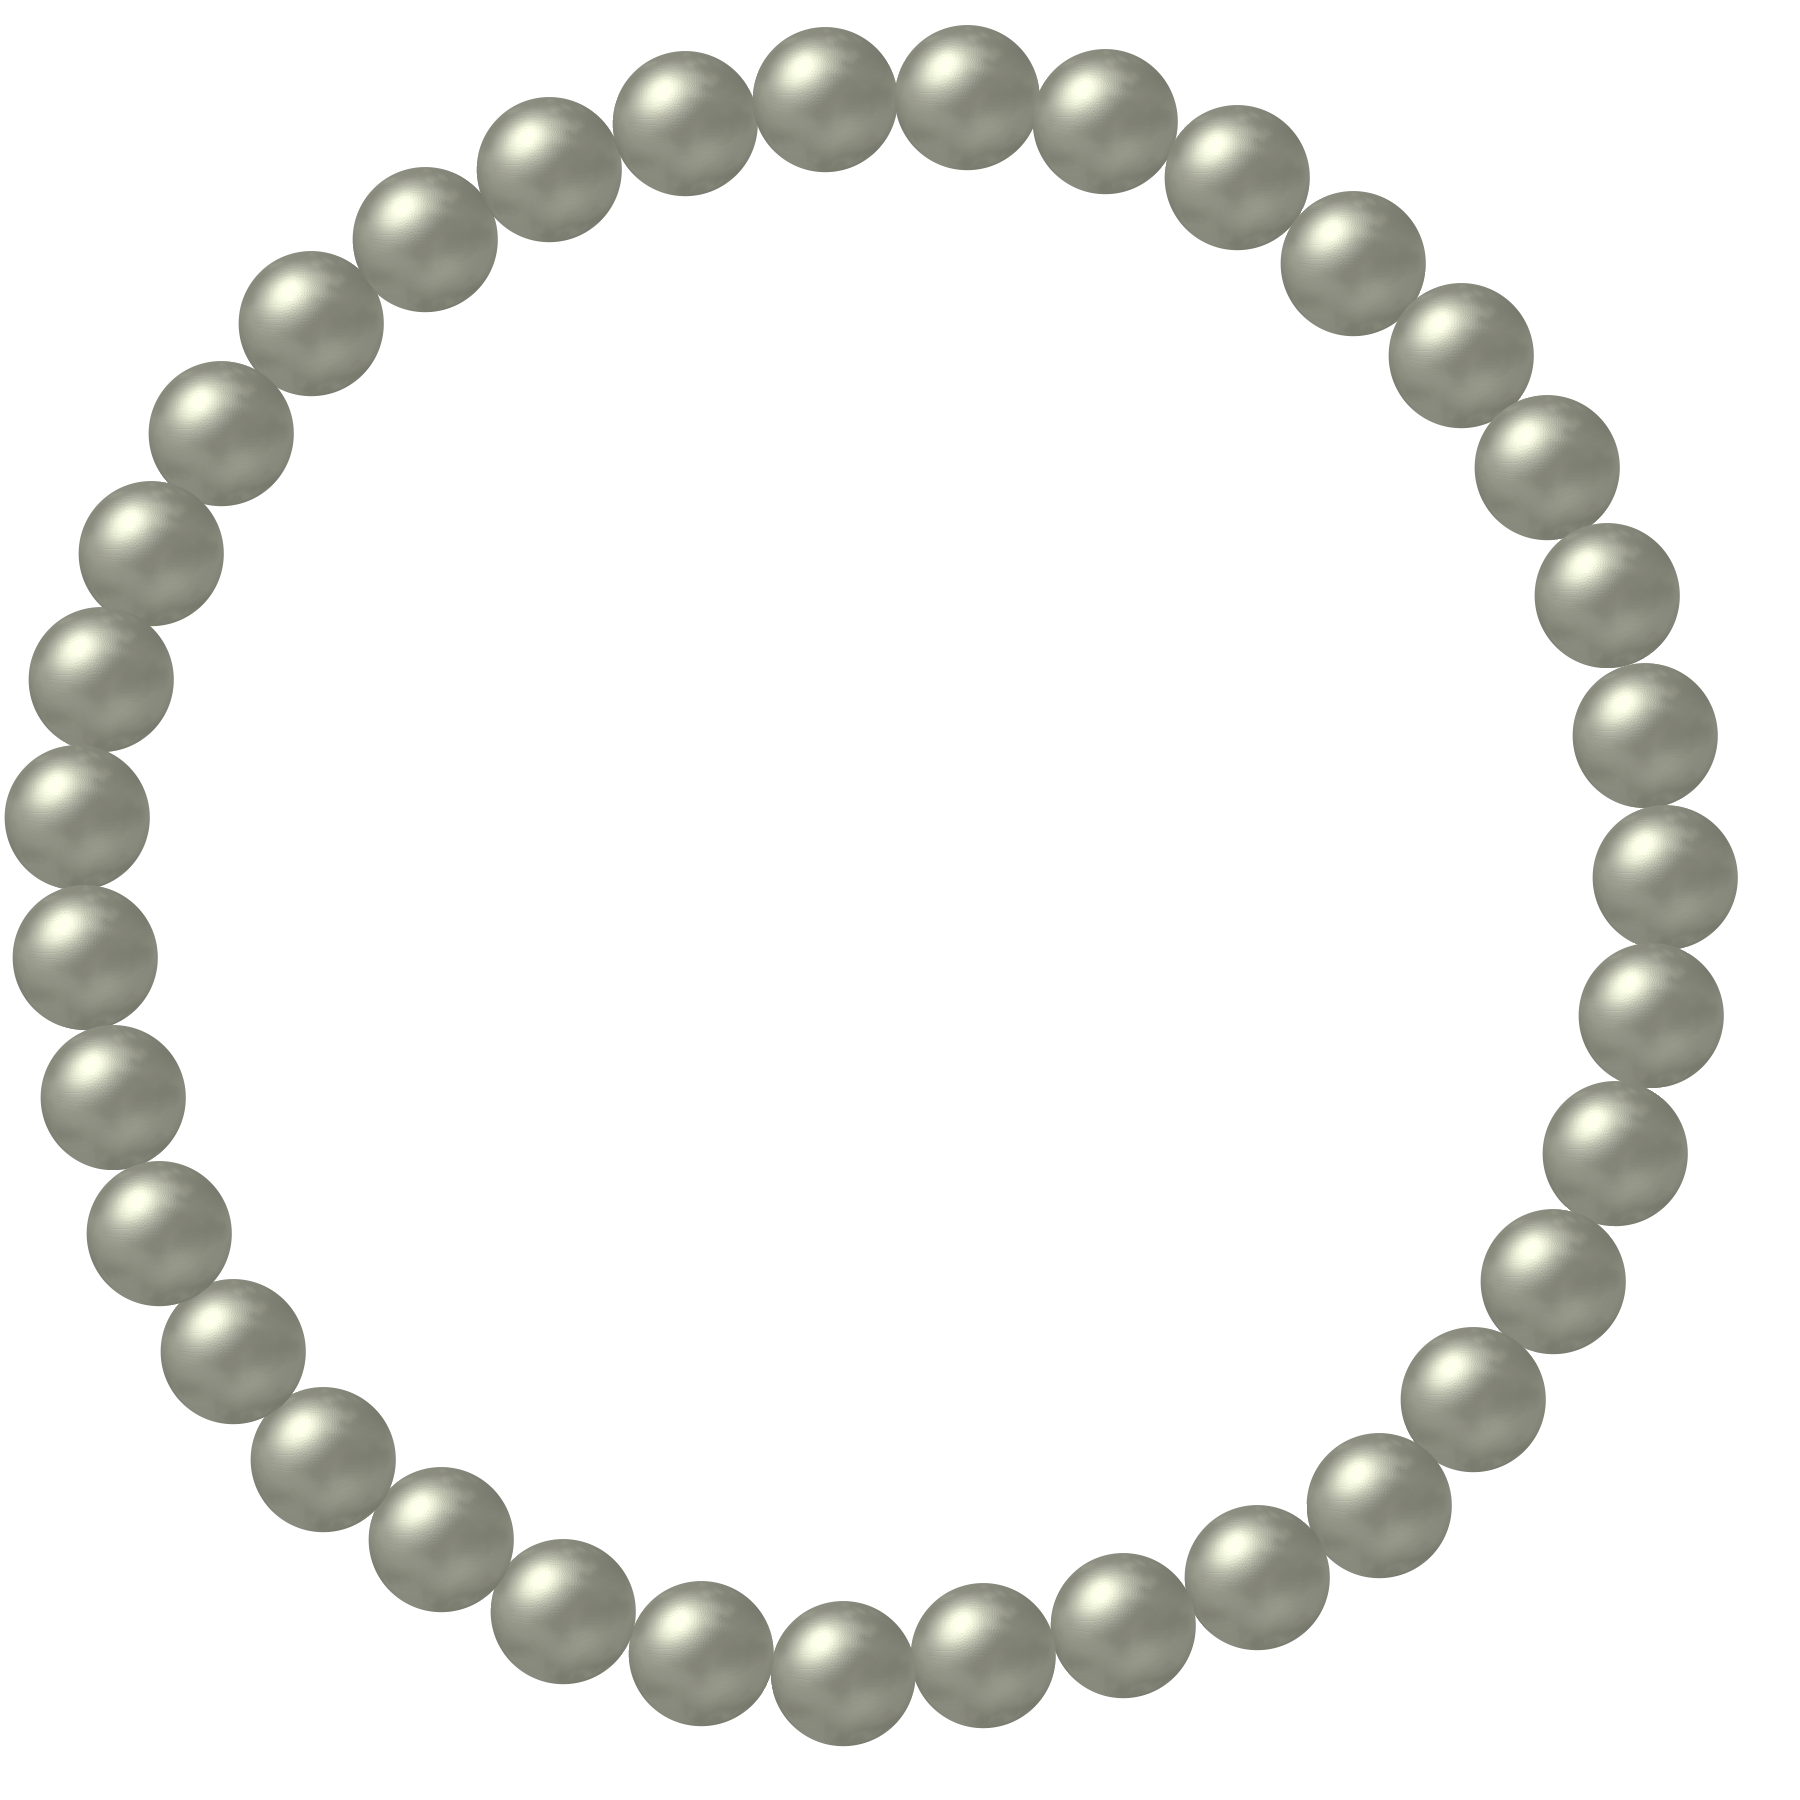 Necklace clipart cute necklace. Pearls png images free